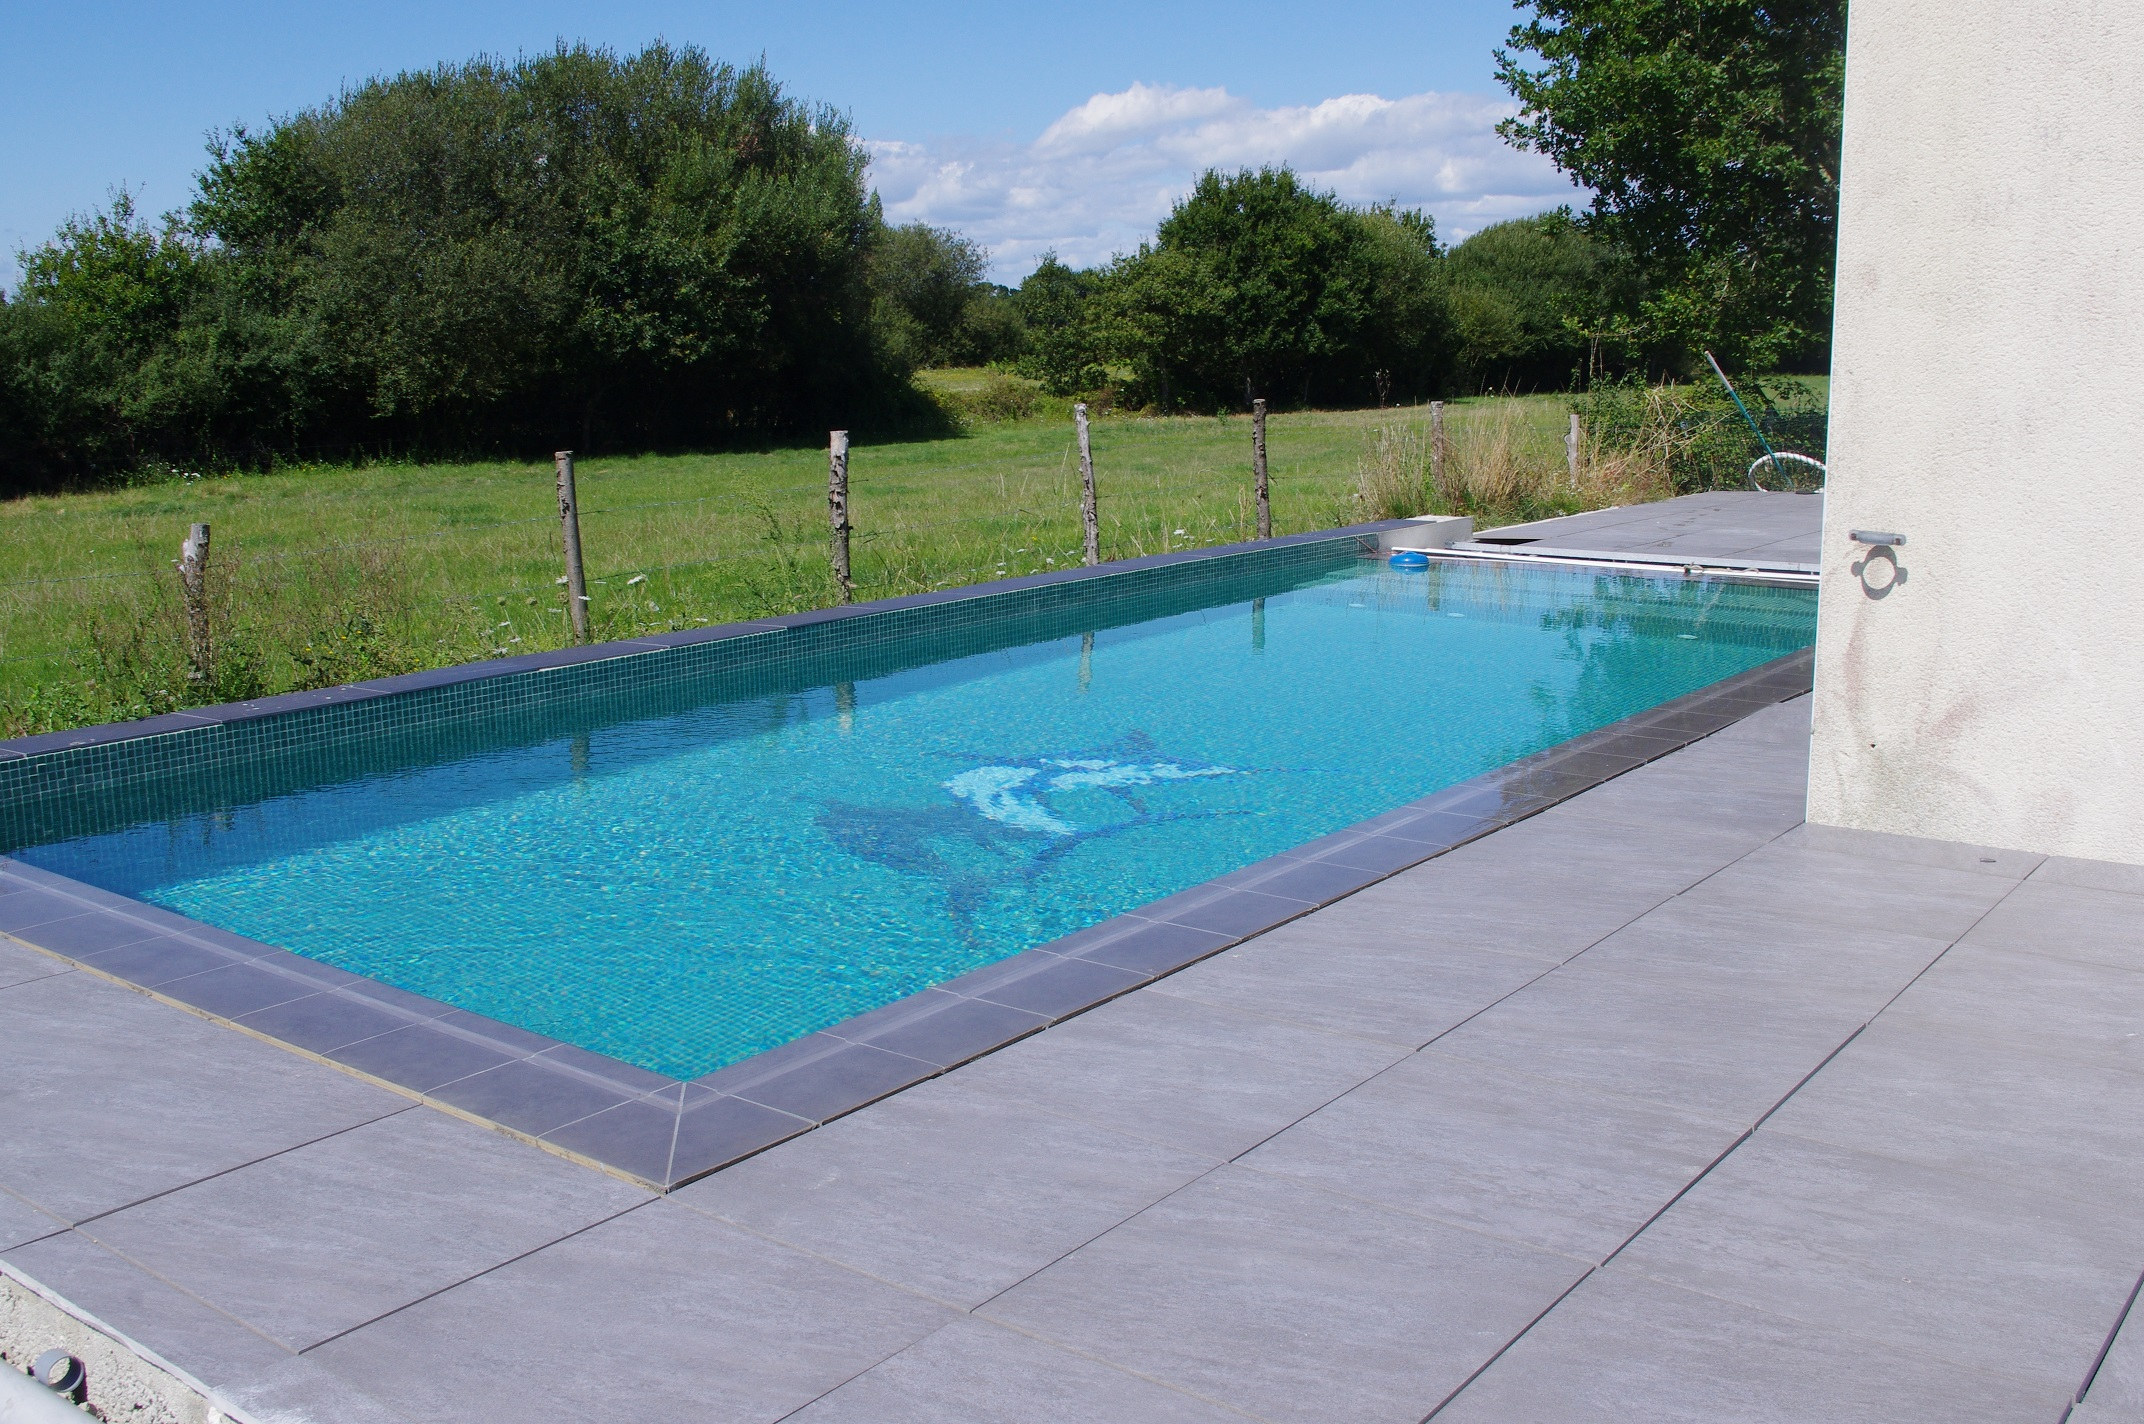 Carrelage design carrelage autour piscine moderne for Carrelage piscine